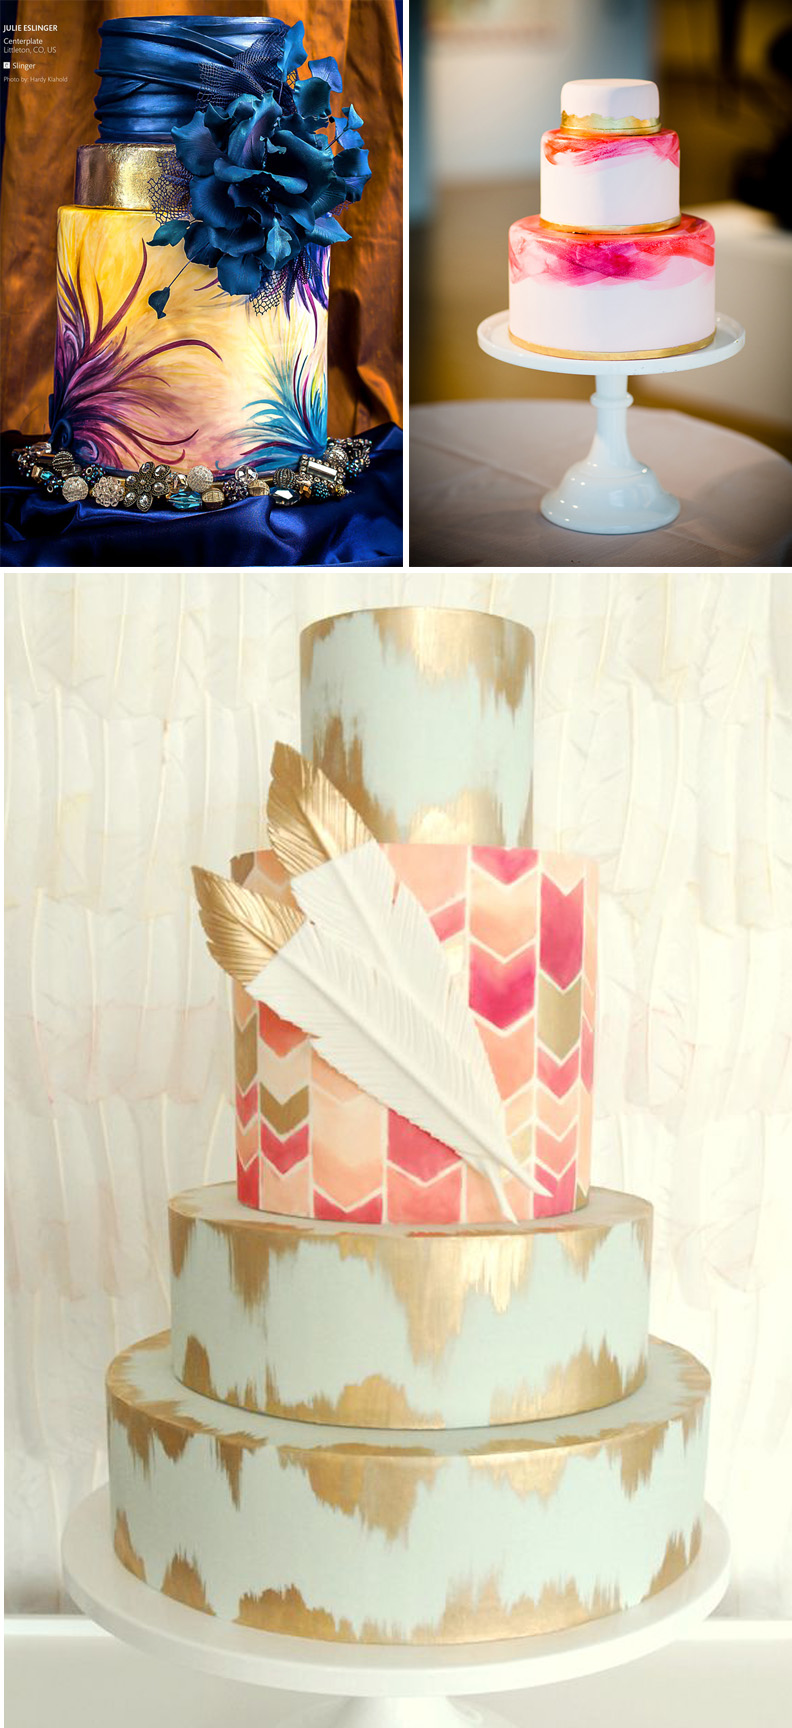 Image Credits: Jullie Eslinger, Whipped Bake Shop, The Cake Blog